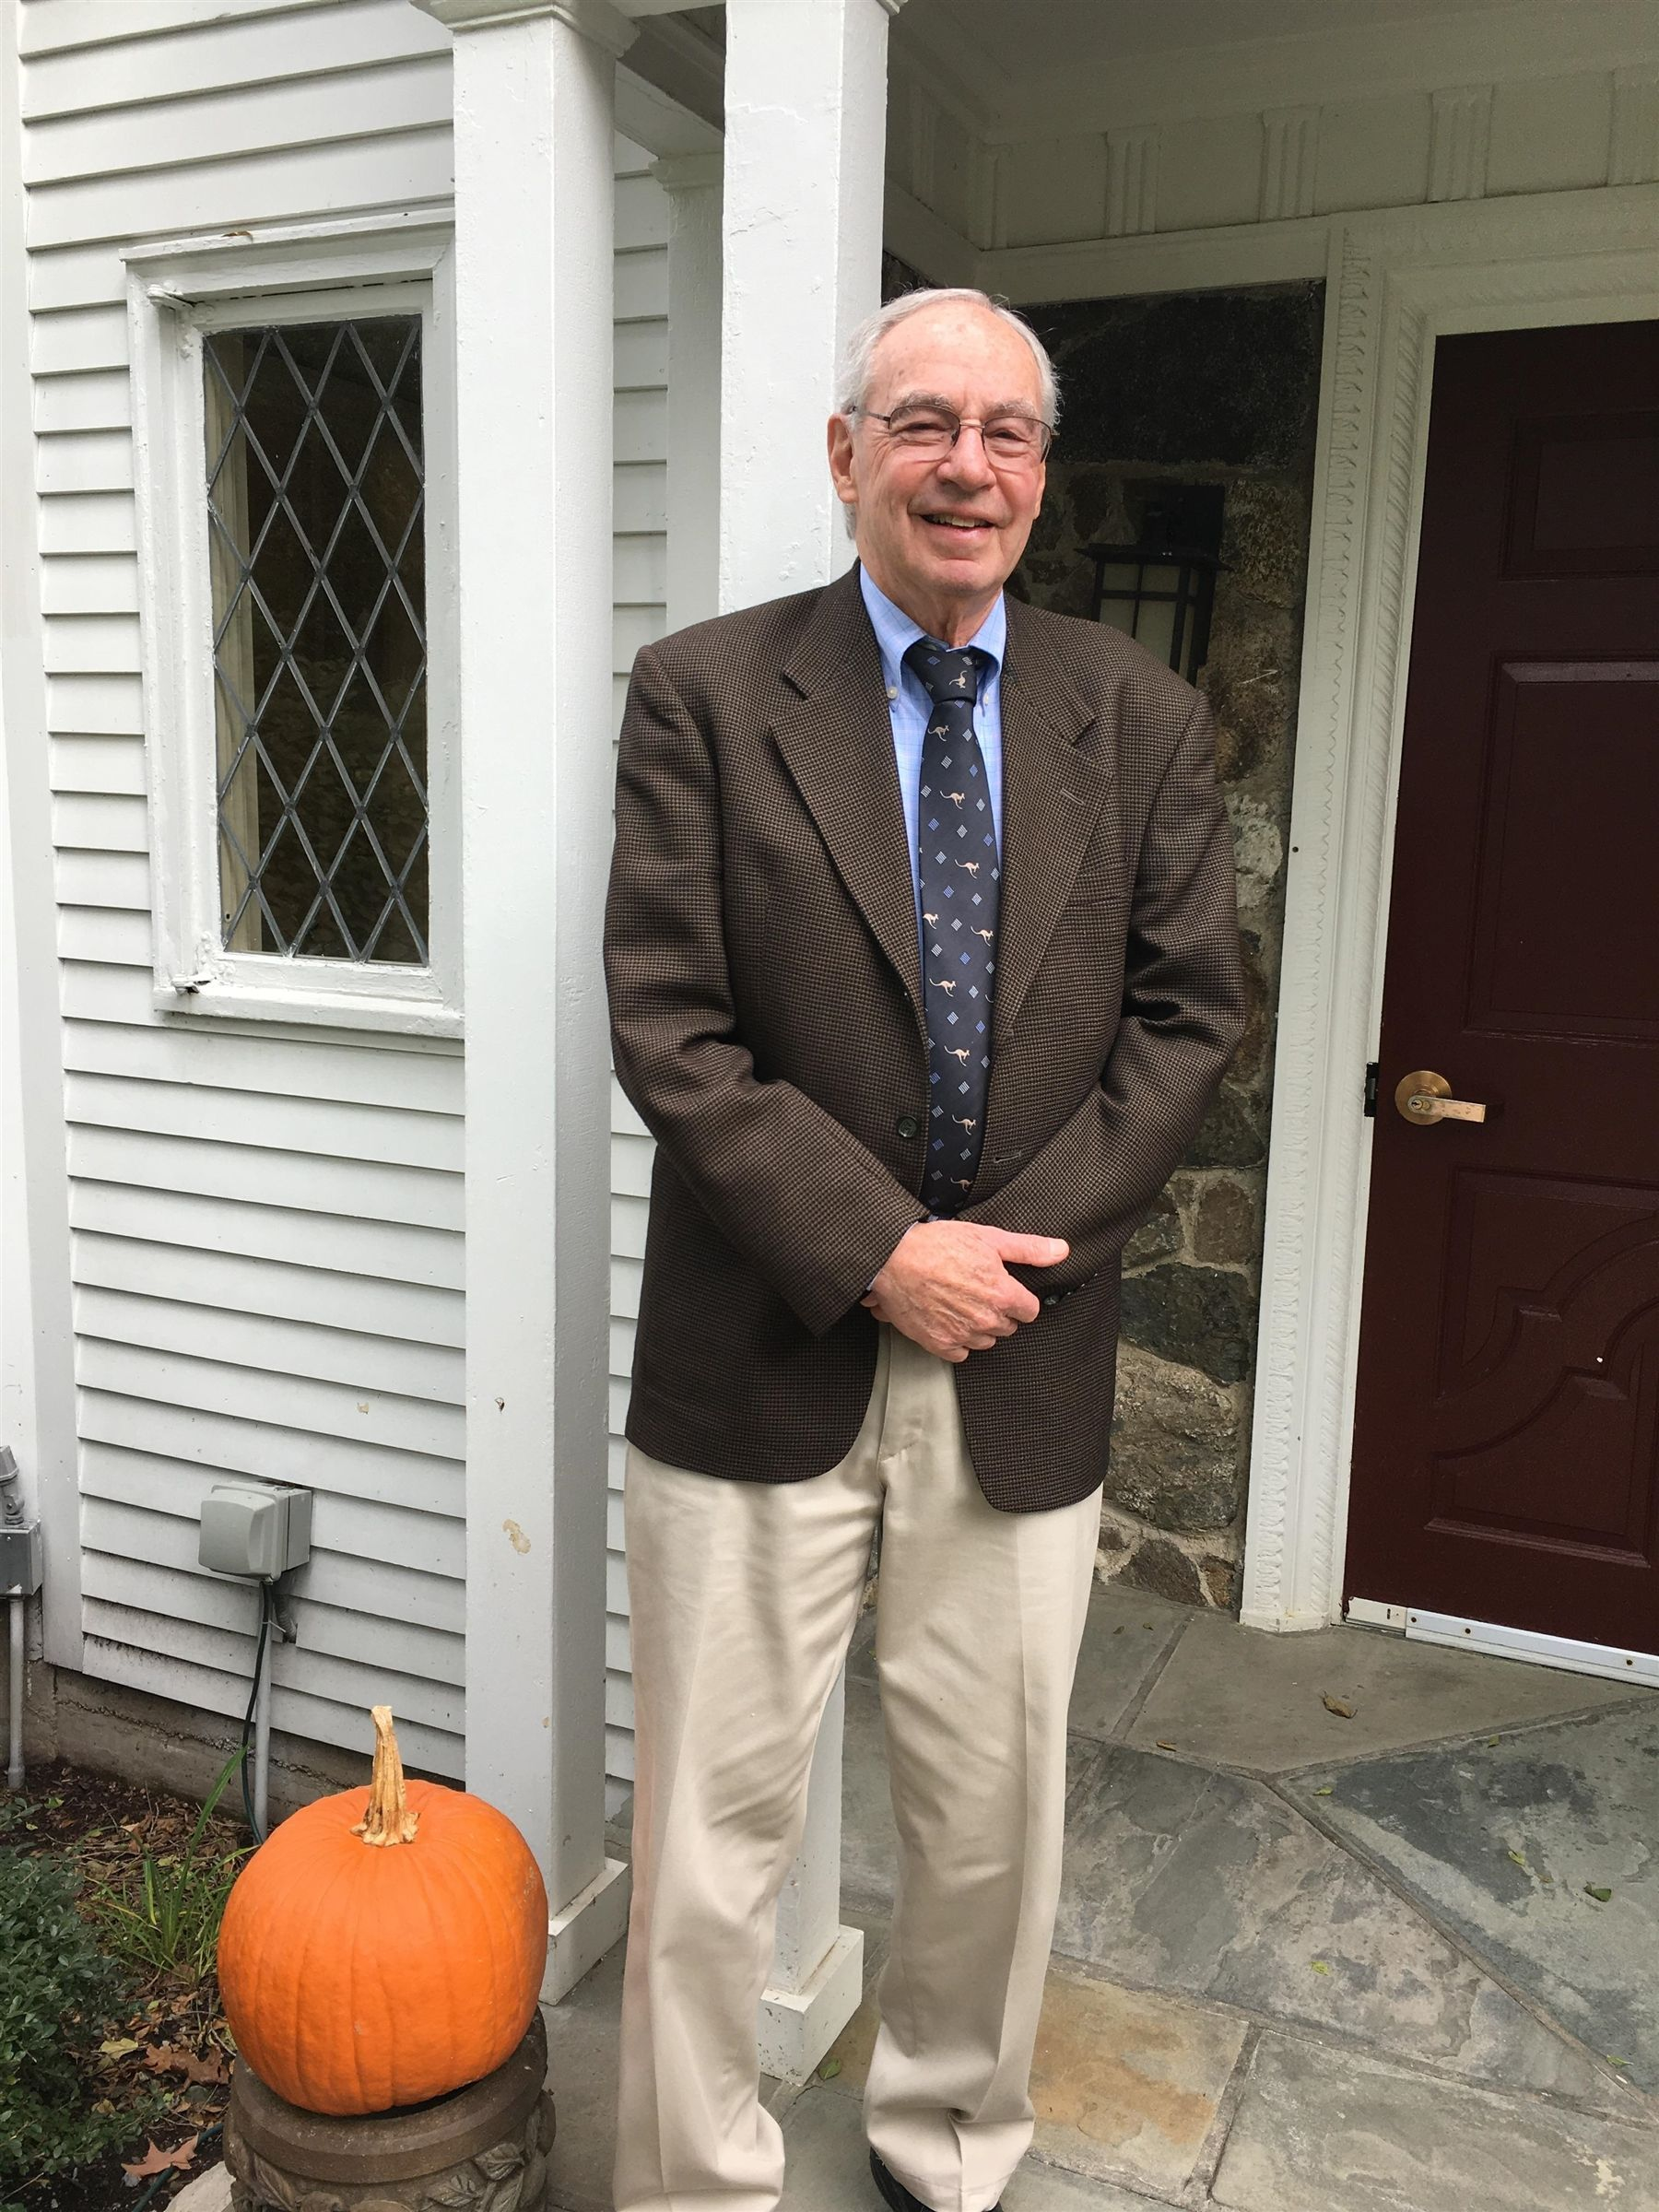 Lunch with Burt Perlmutter '54 at the Alumni House October 31, 2018